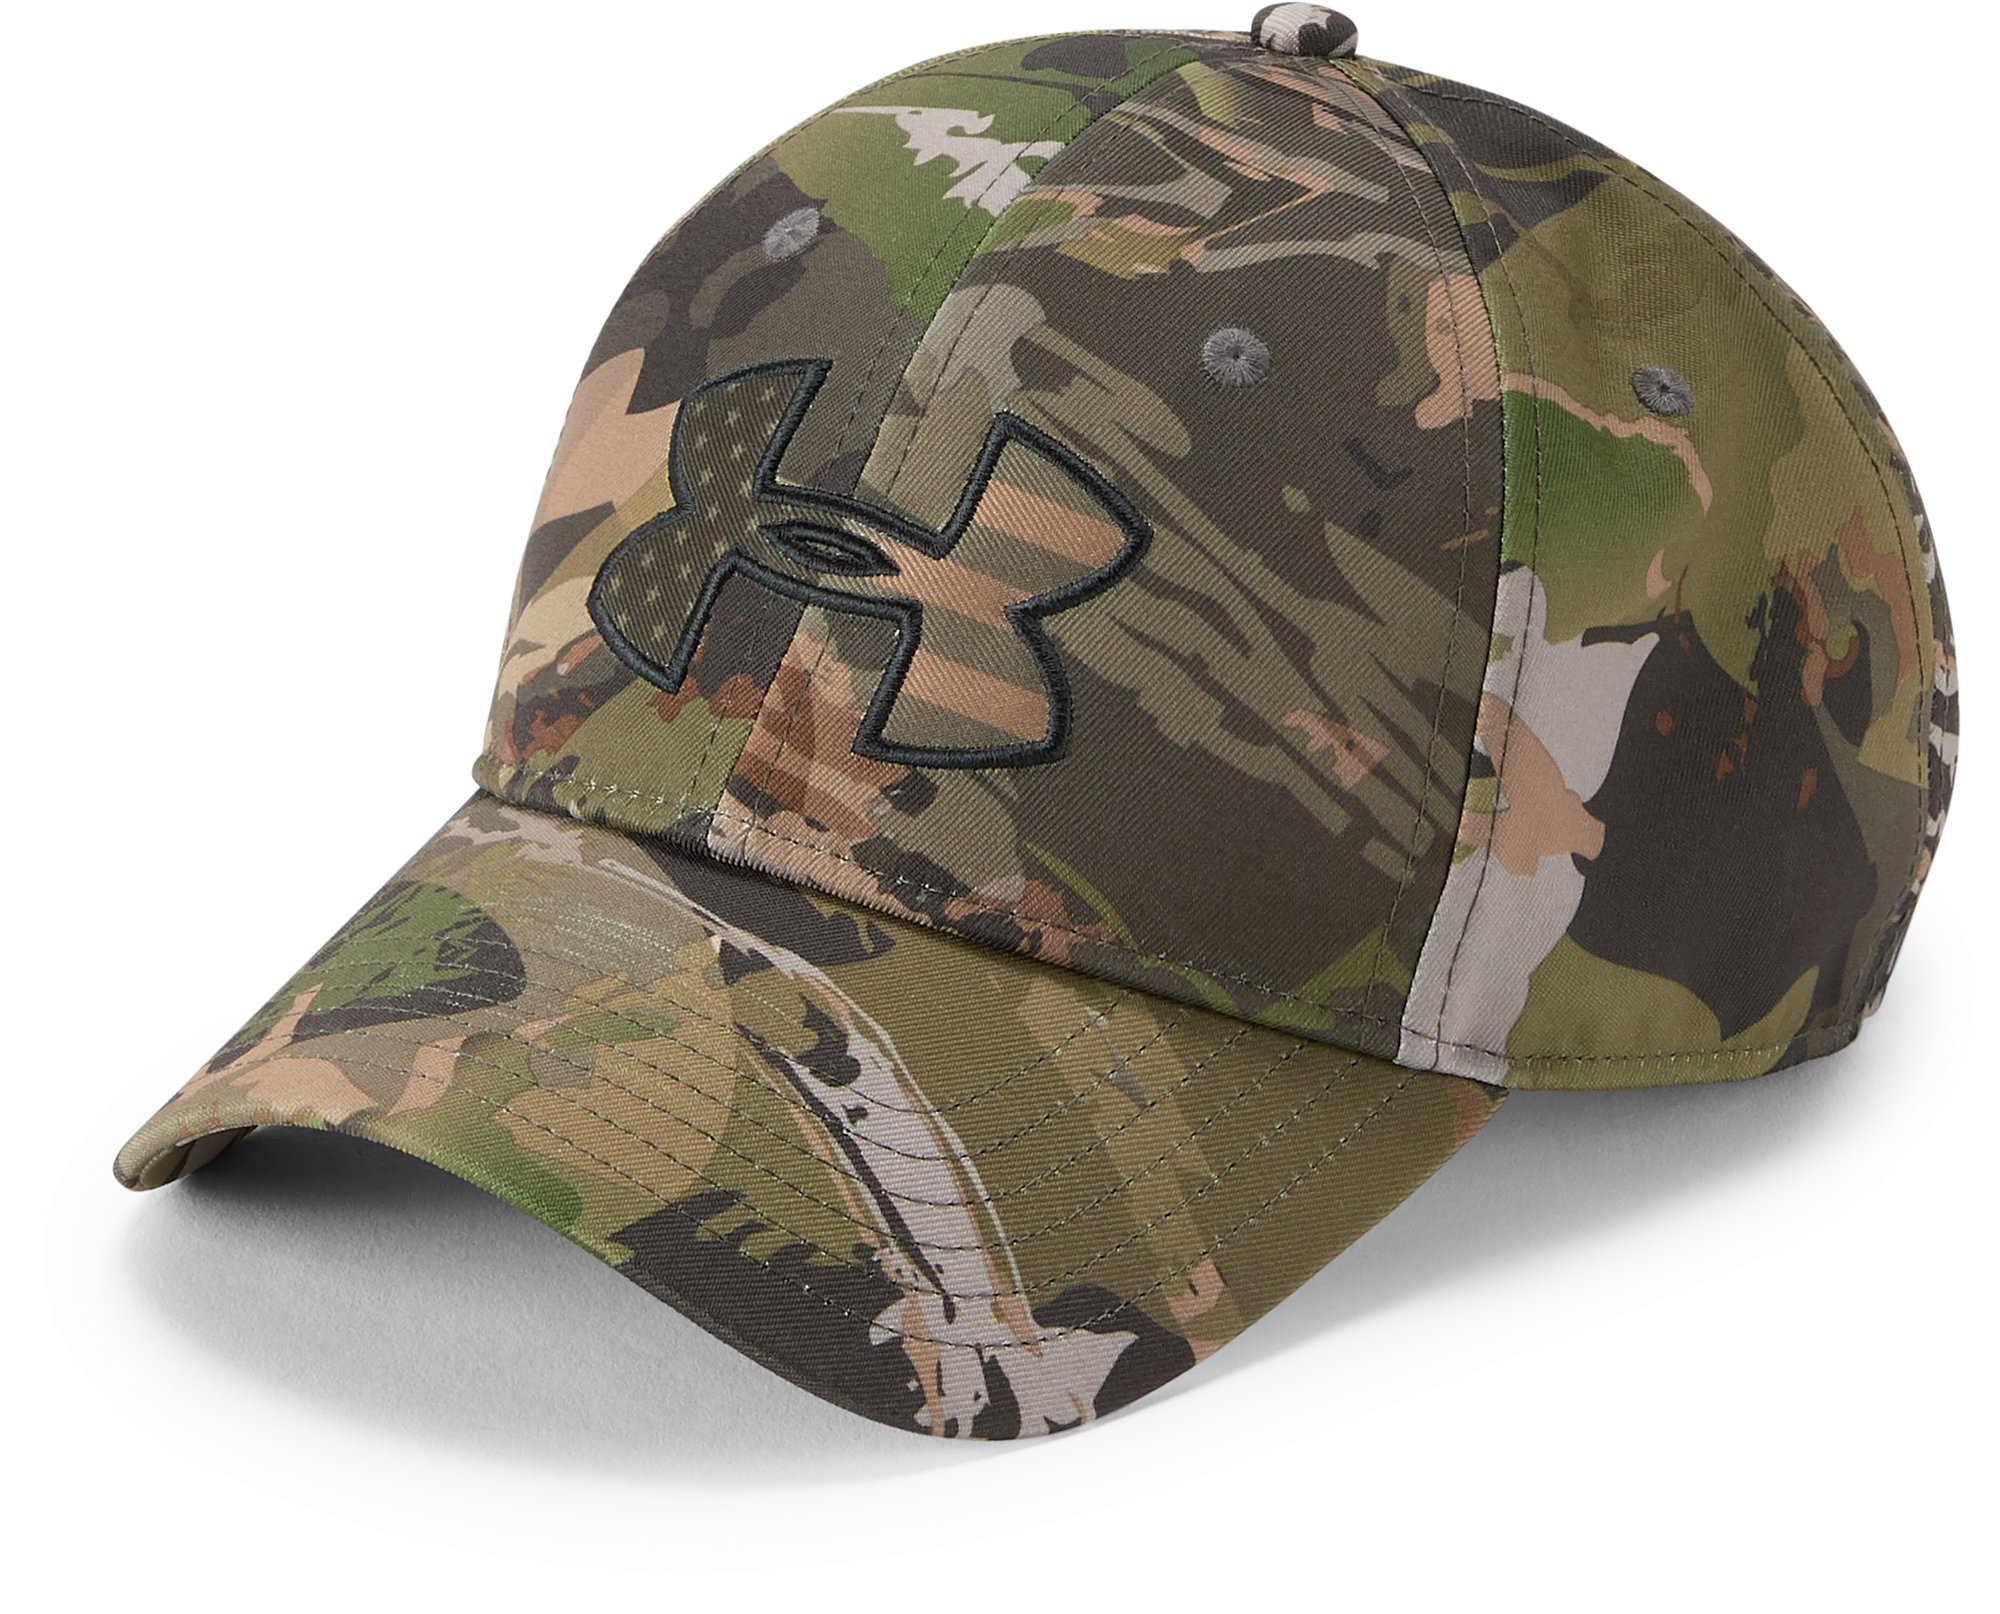 , UA FOREST CAMO, zoomed